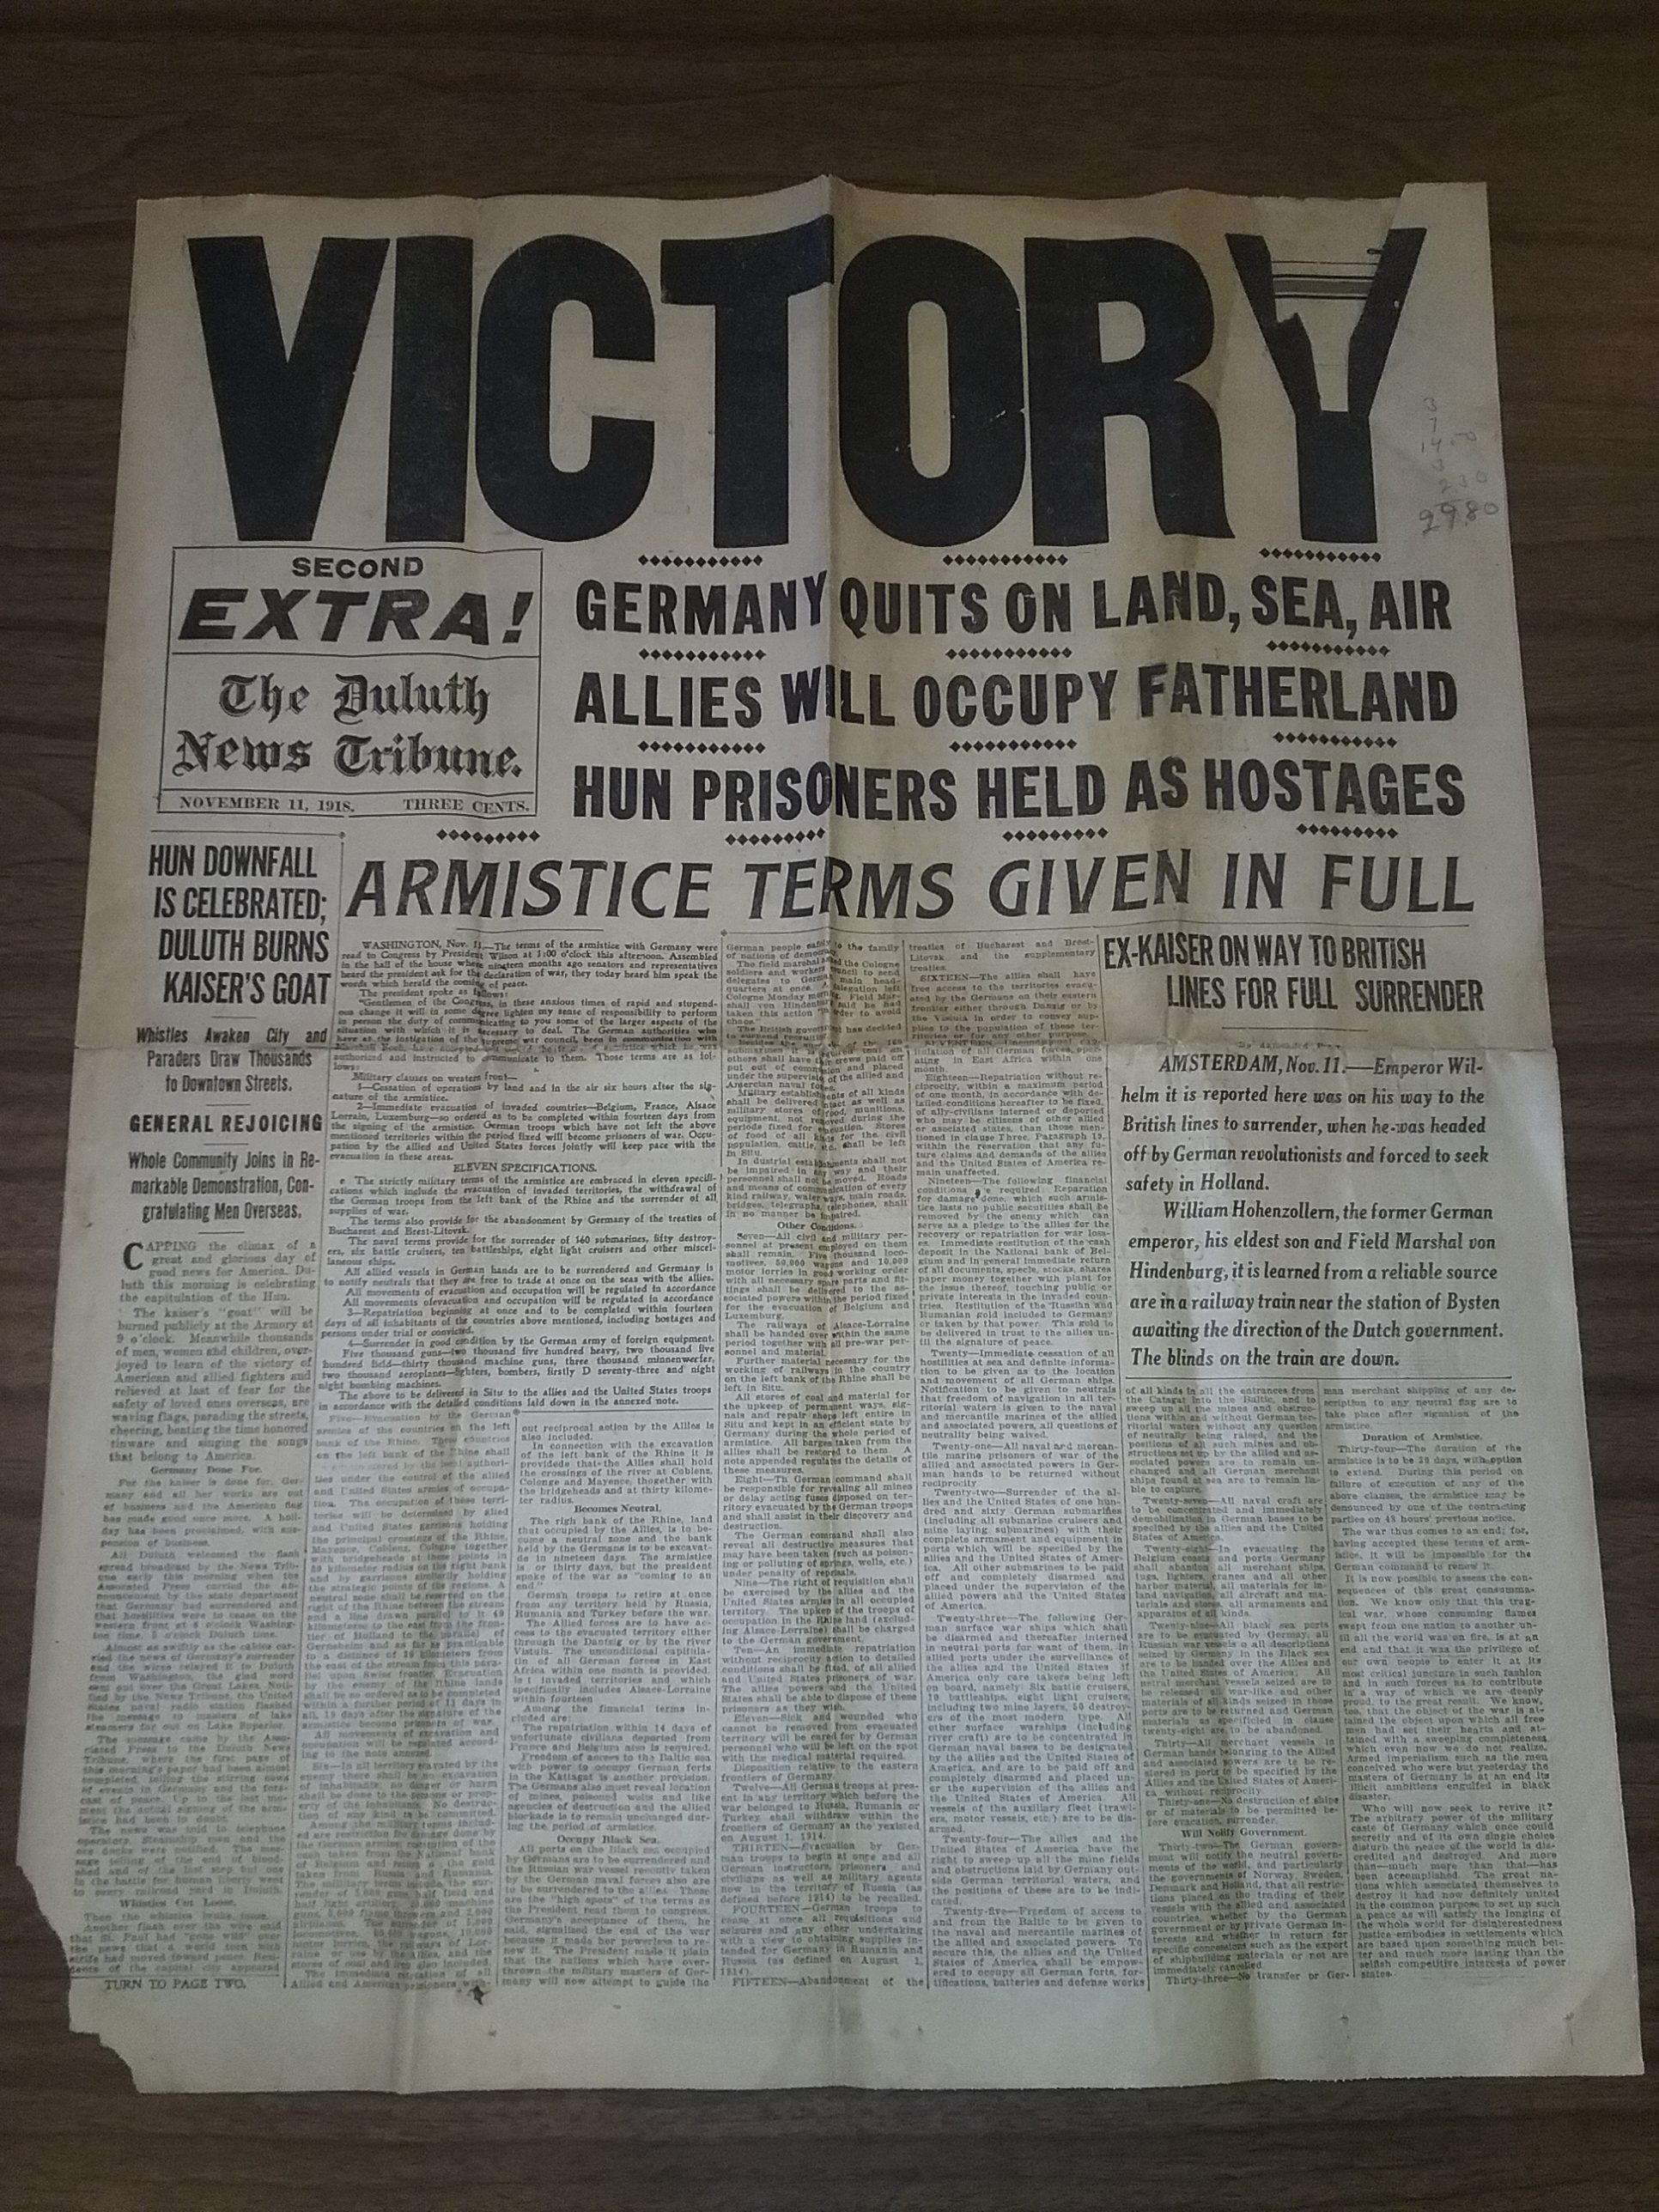 Armistice Day, November 11, 1918, announcement of the end of World War I from The Duluth News Tribune, page 1.